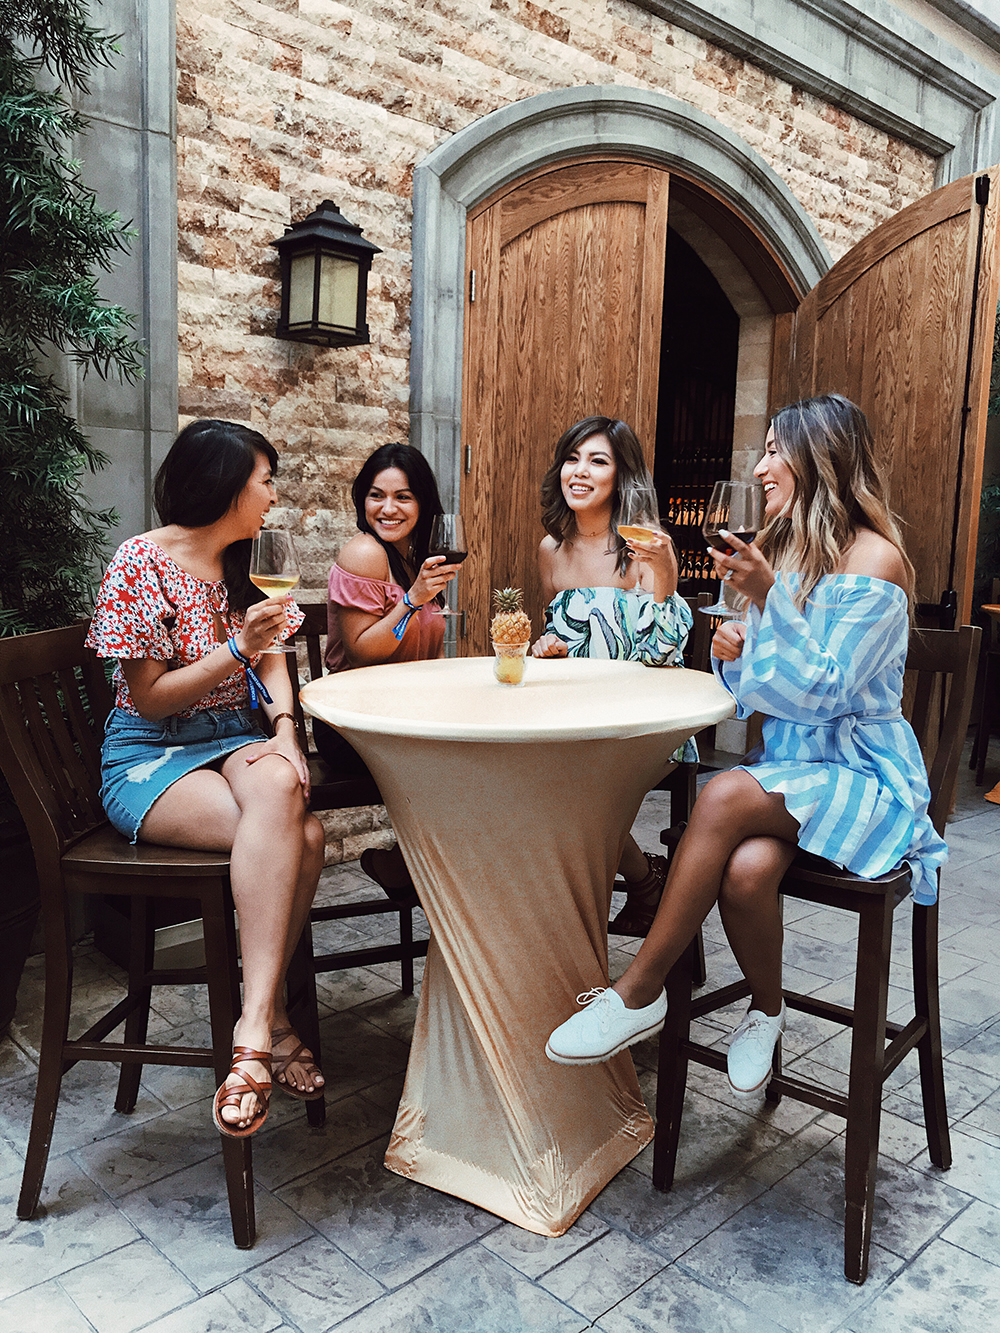 How to Make Friends as an Adult, Friends, friendships, best friends, bff, girlfriends, adult friends, life, lifestyle,  melrodstyle, adulting, la blogger, whittier blogger, latina blogger, hispanic blogger, mexican blogger, inspiration, tips, life tips, friendship tips,